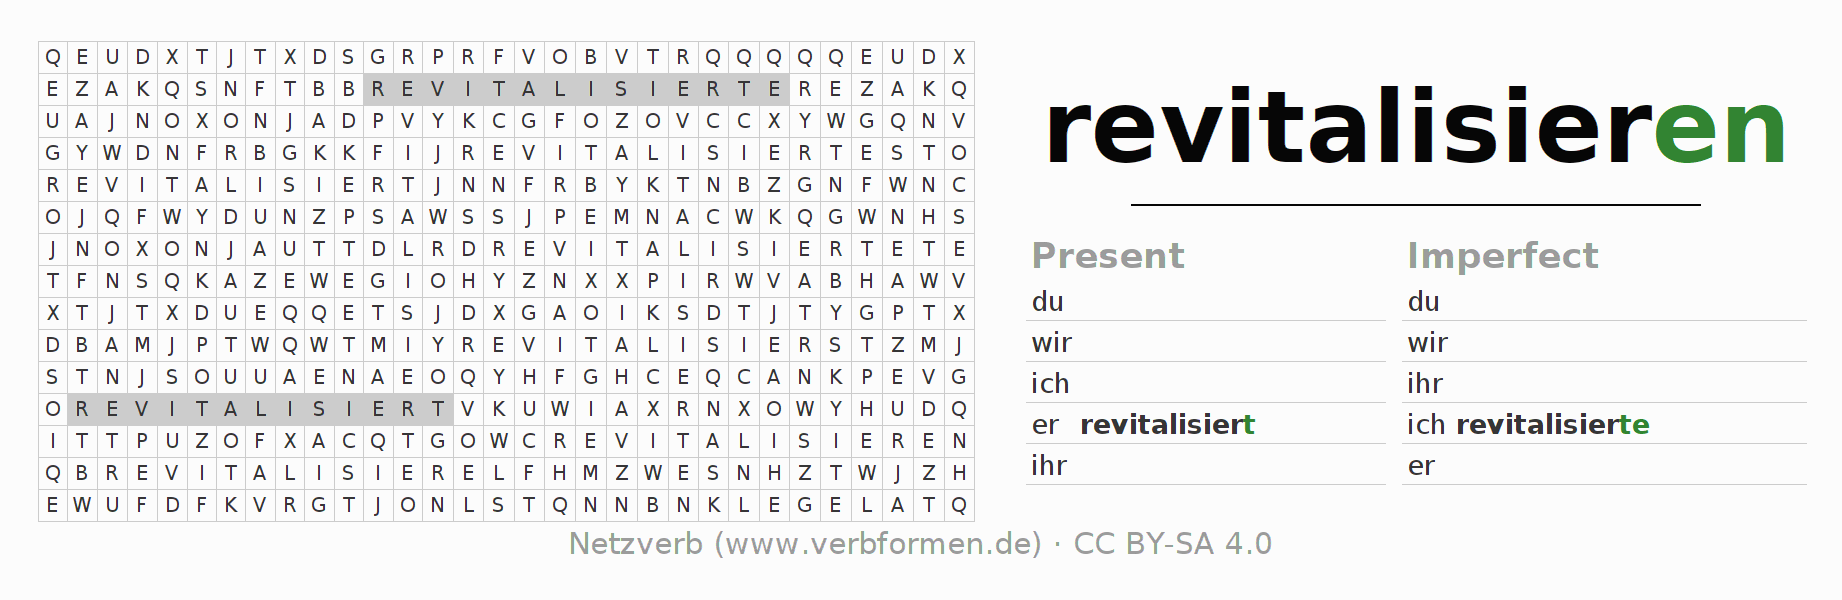 Word search puzzle for the conjugation of the verb revitalisieren